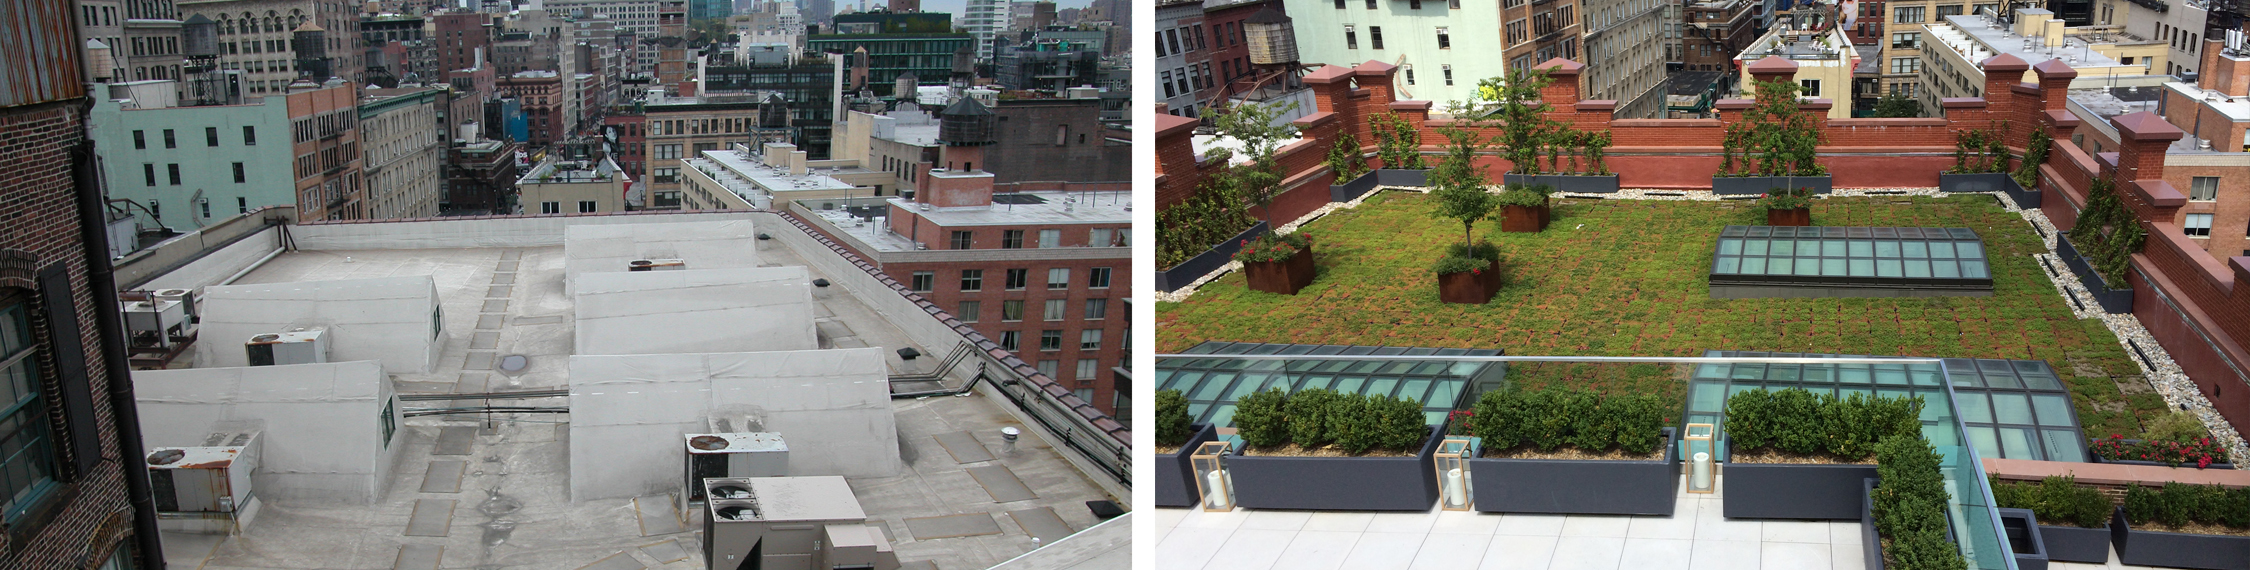 Restored parapets and green roof system visible from the rooftop.